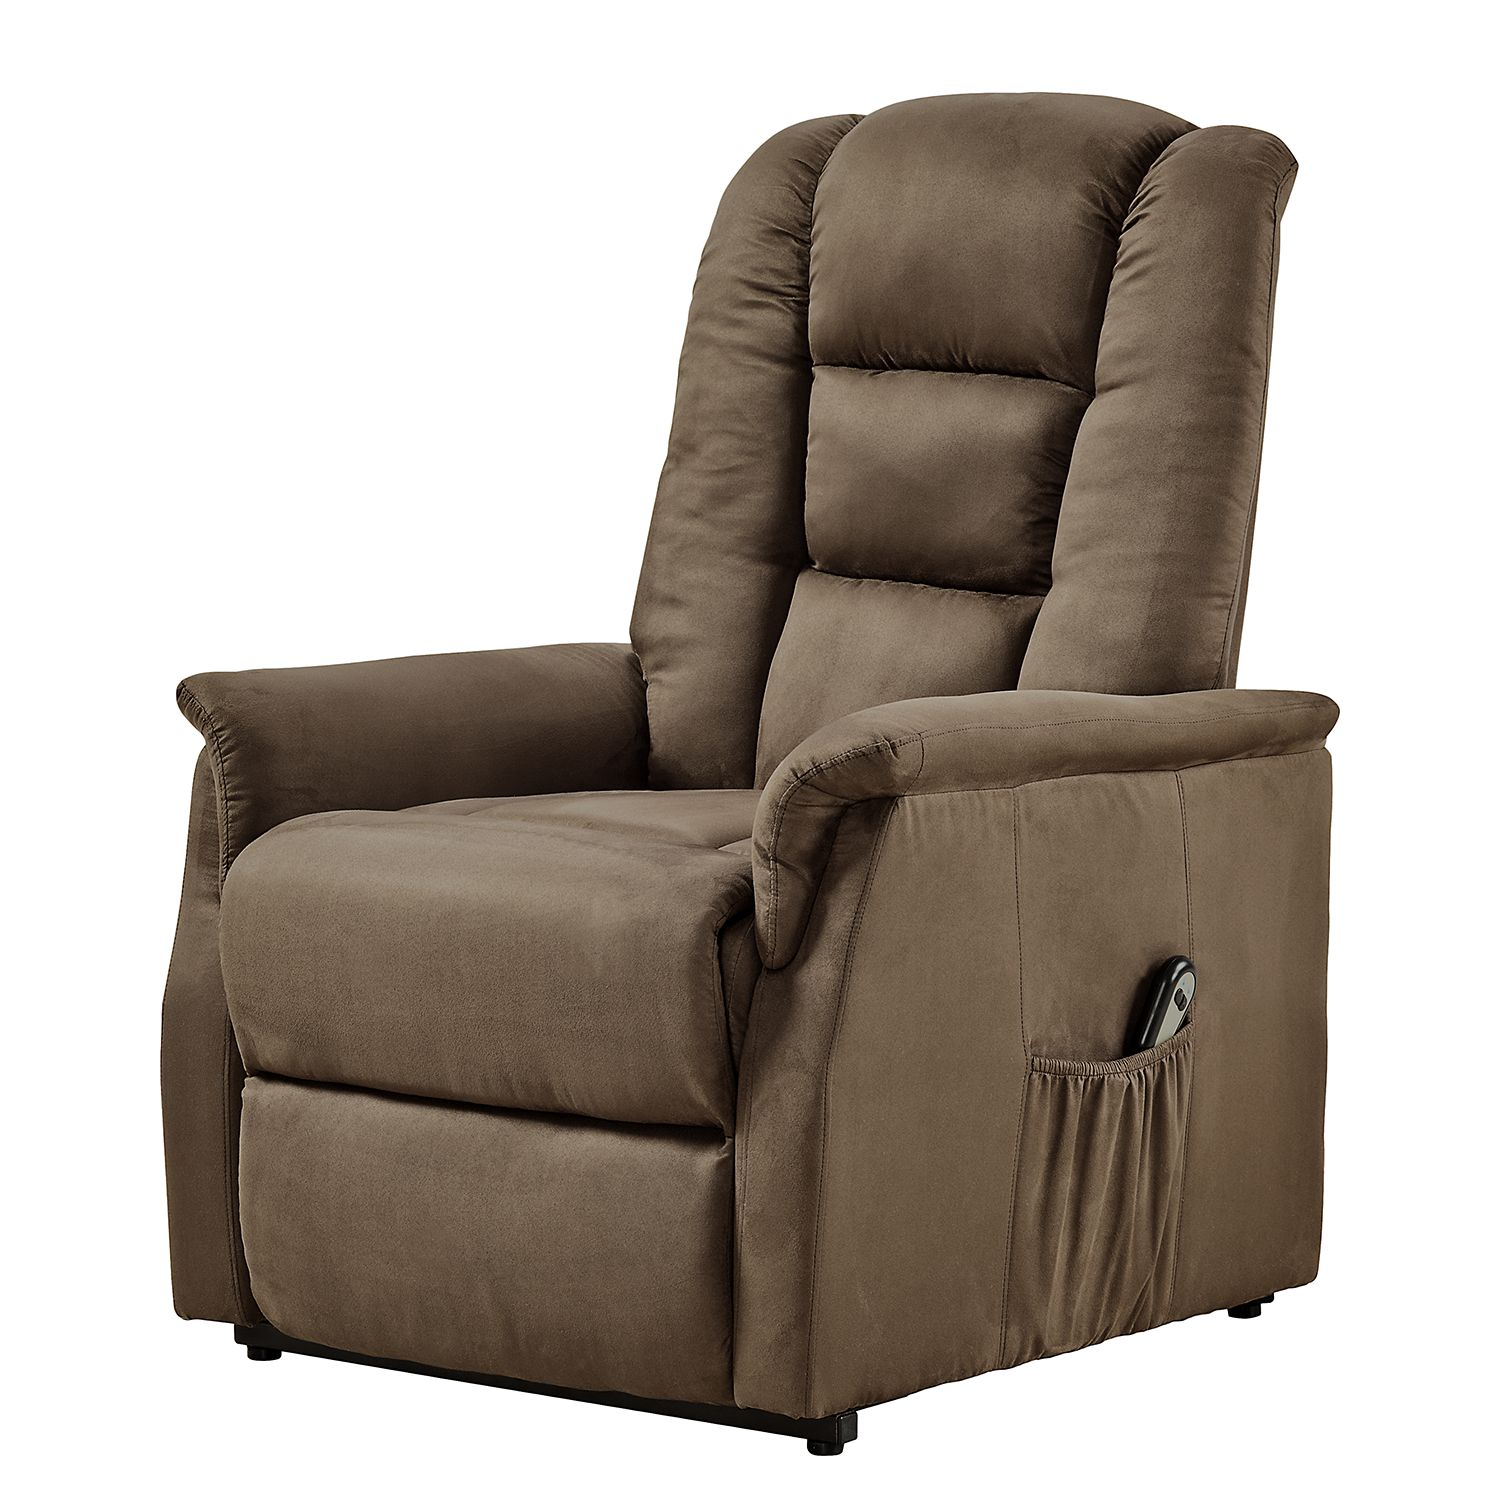 home24 Relaxesessel Glein | Wohnzimmer > Sessel > Relaxsessel | Modoform